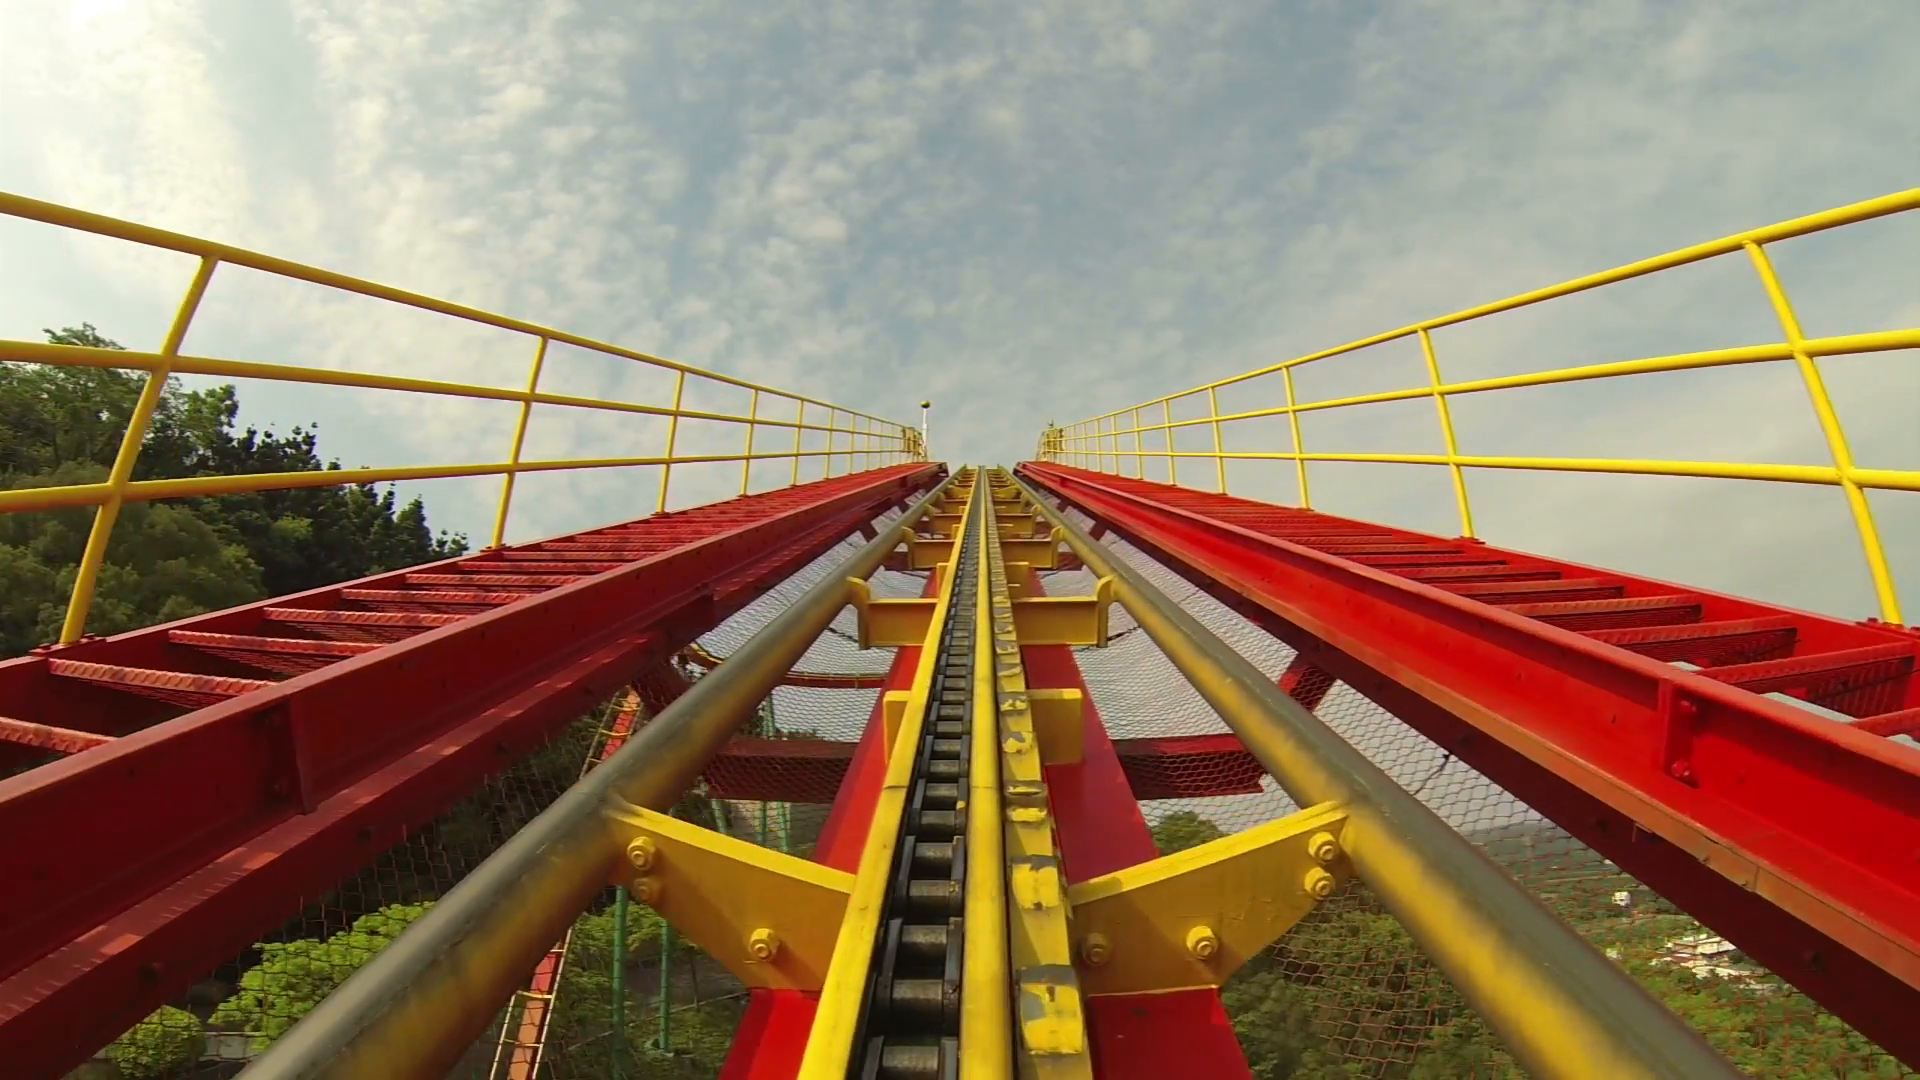 Roller Coaster Rides up Incline on Track Stock Video Footage ...